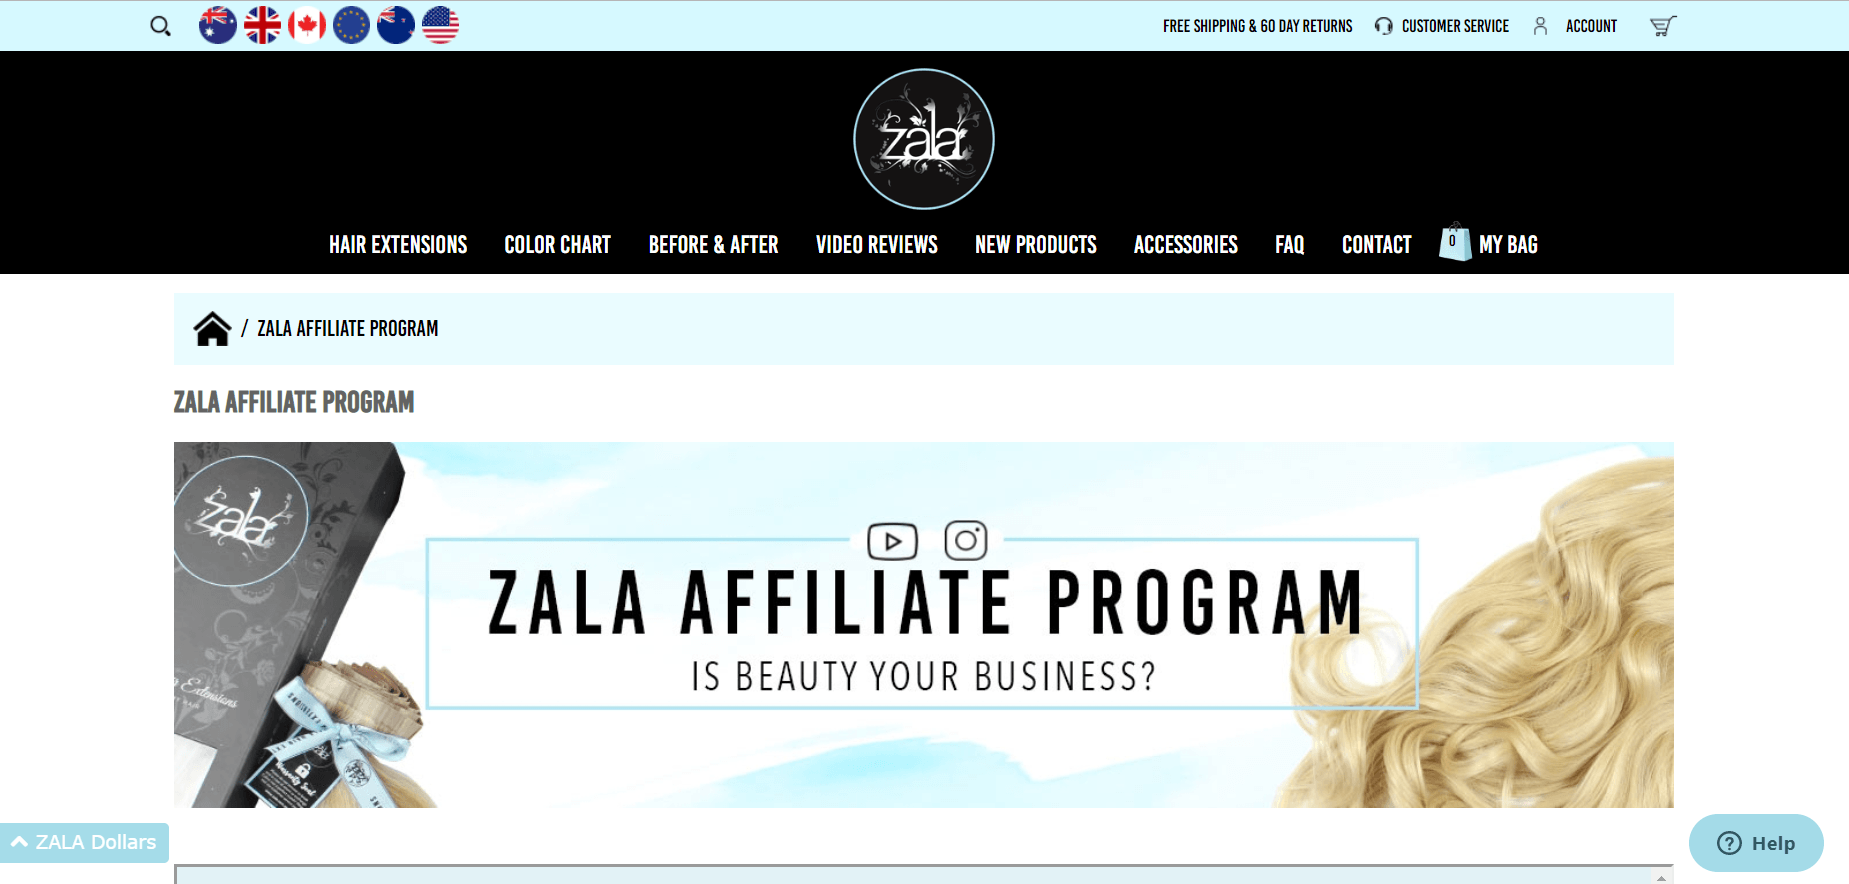 This is a screenshot of the Zala Affiliate Program landing page, with no large images, but black lettering on a light blue and white background.